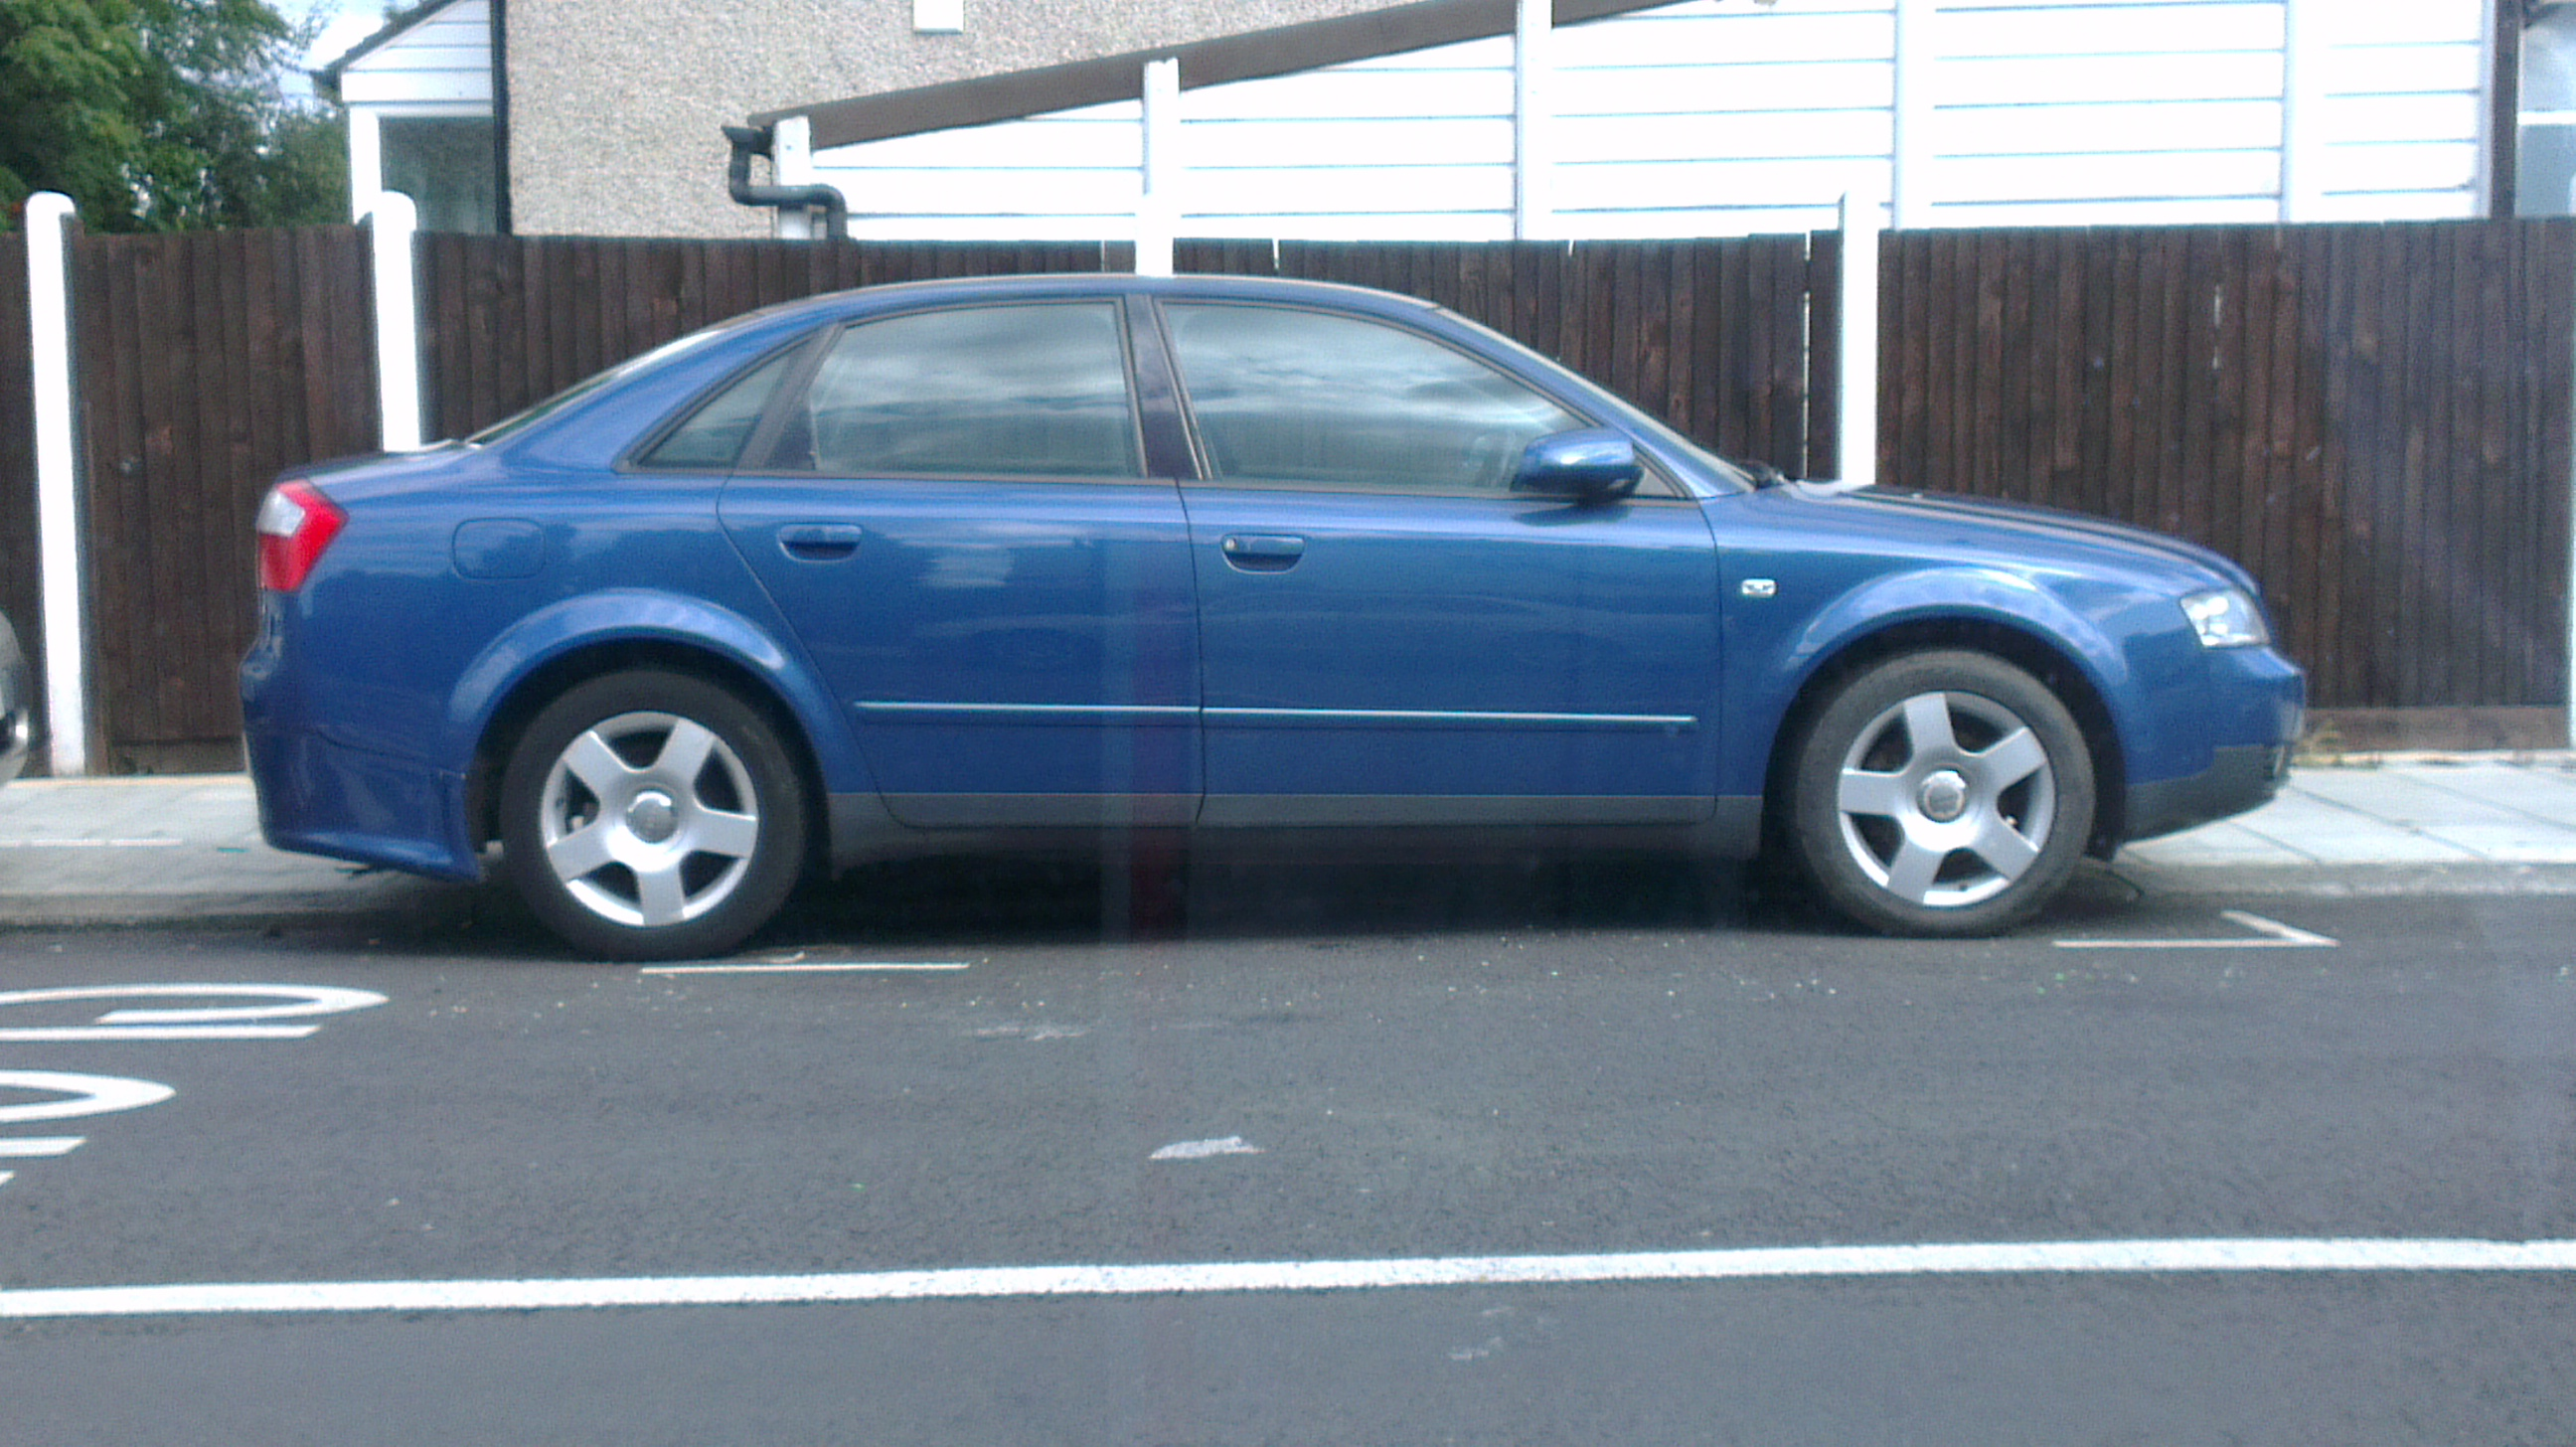 audi A4 SE 2.0 automatic NEW-MOT URGENT-699.00 CALL 07400641169